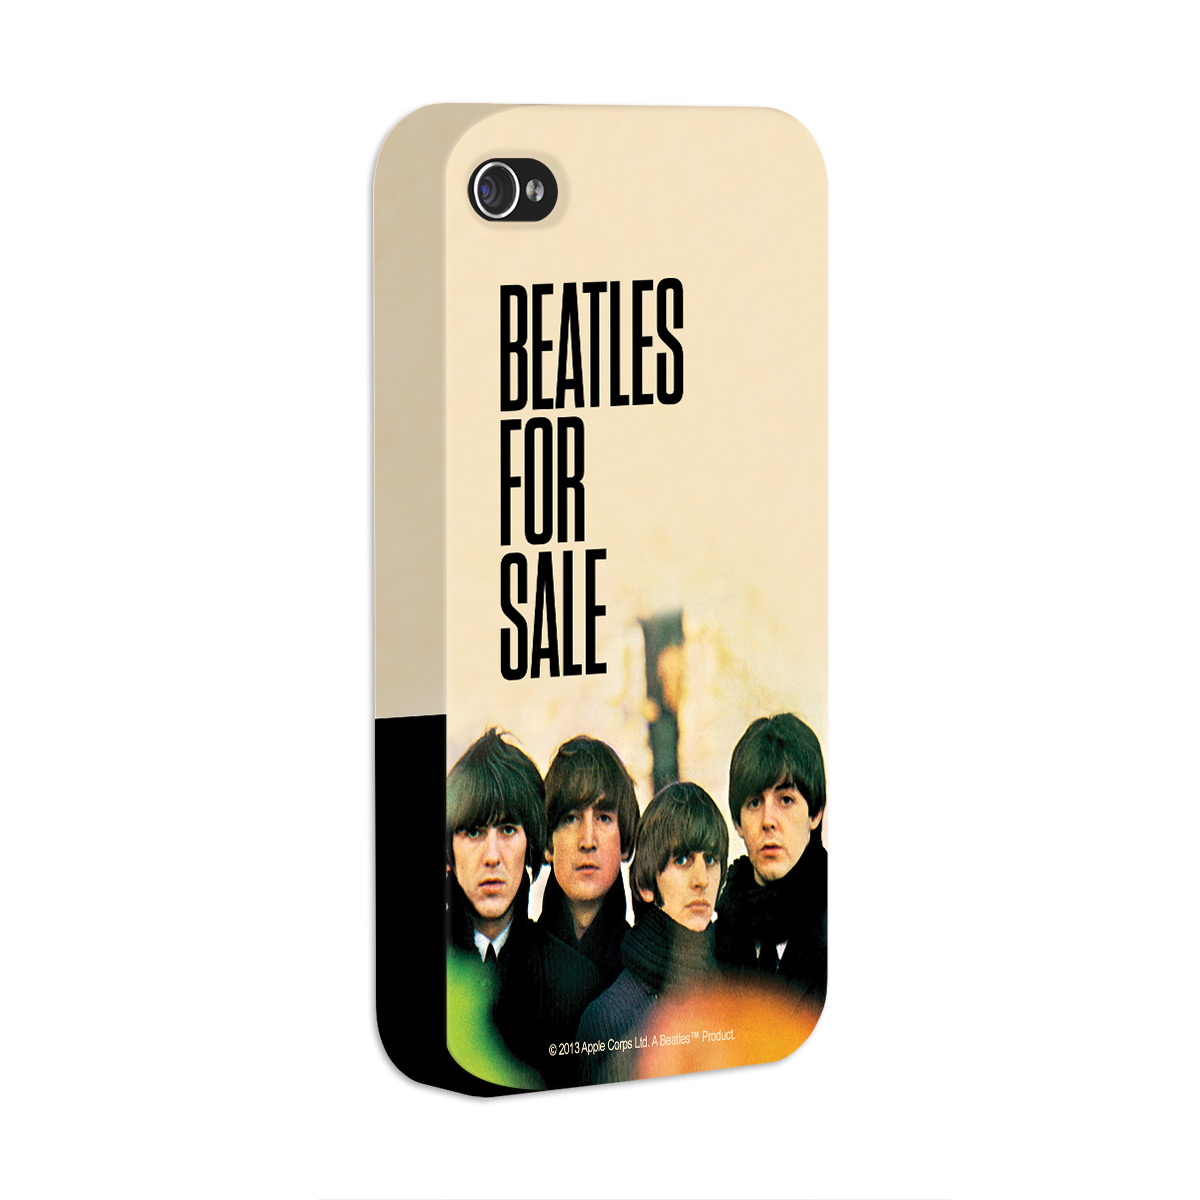 Kit Com 3 Capas de iPhone 4/4S The Beatles Albums 60s 2